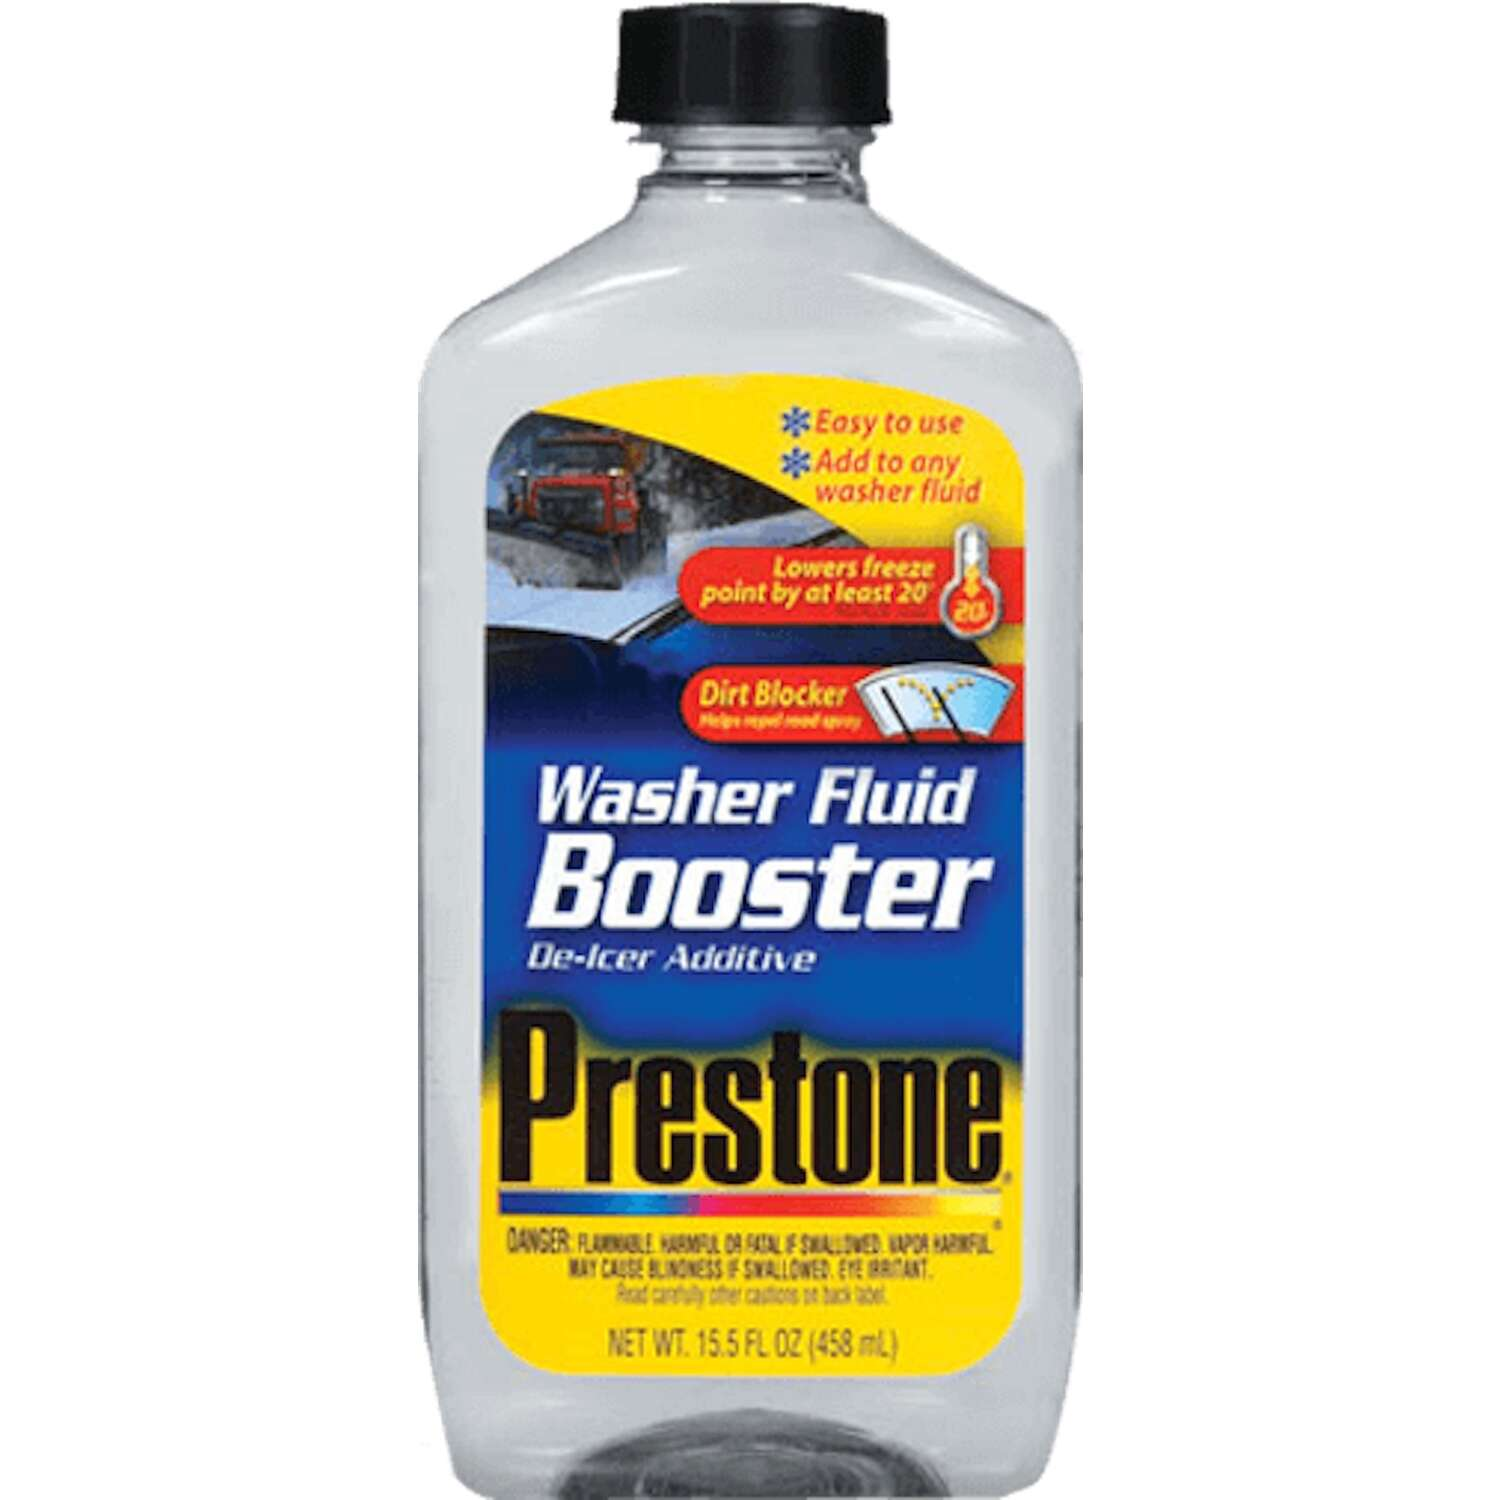 Prestone  Washer Fluid Booster  Liquid  15.5 oz.